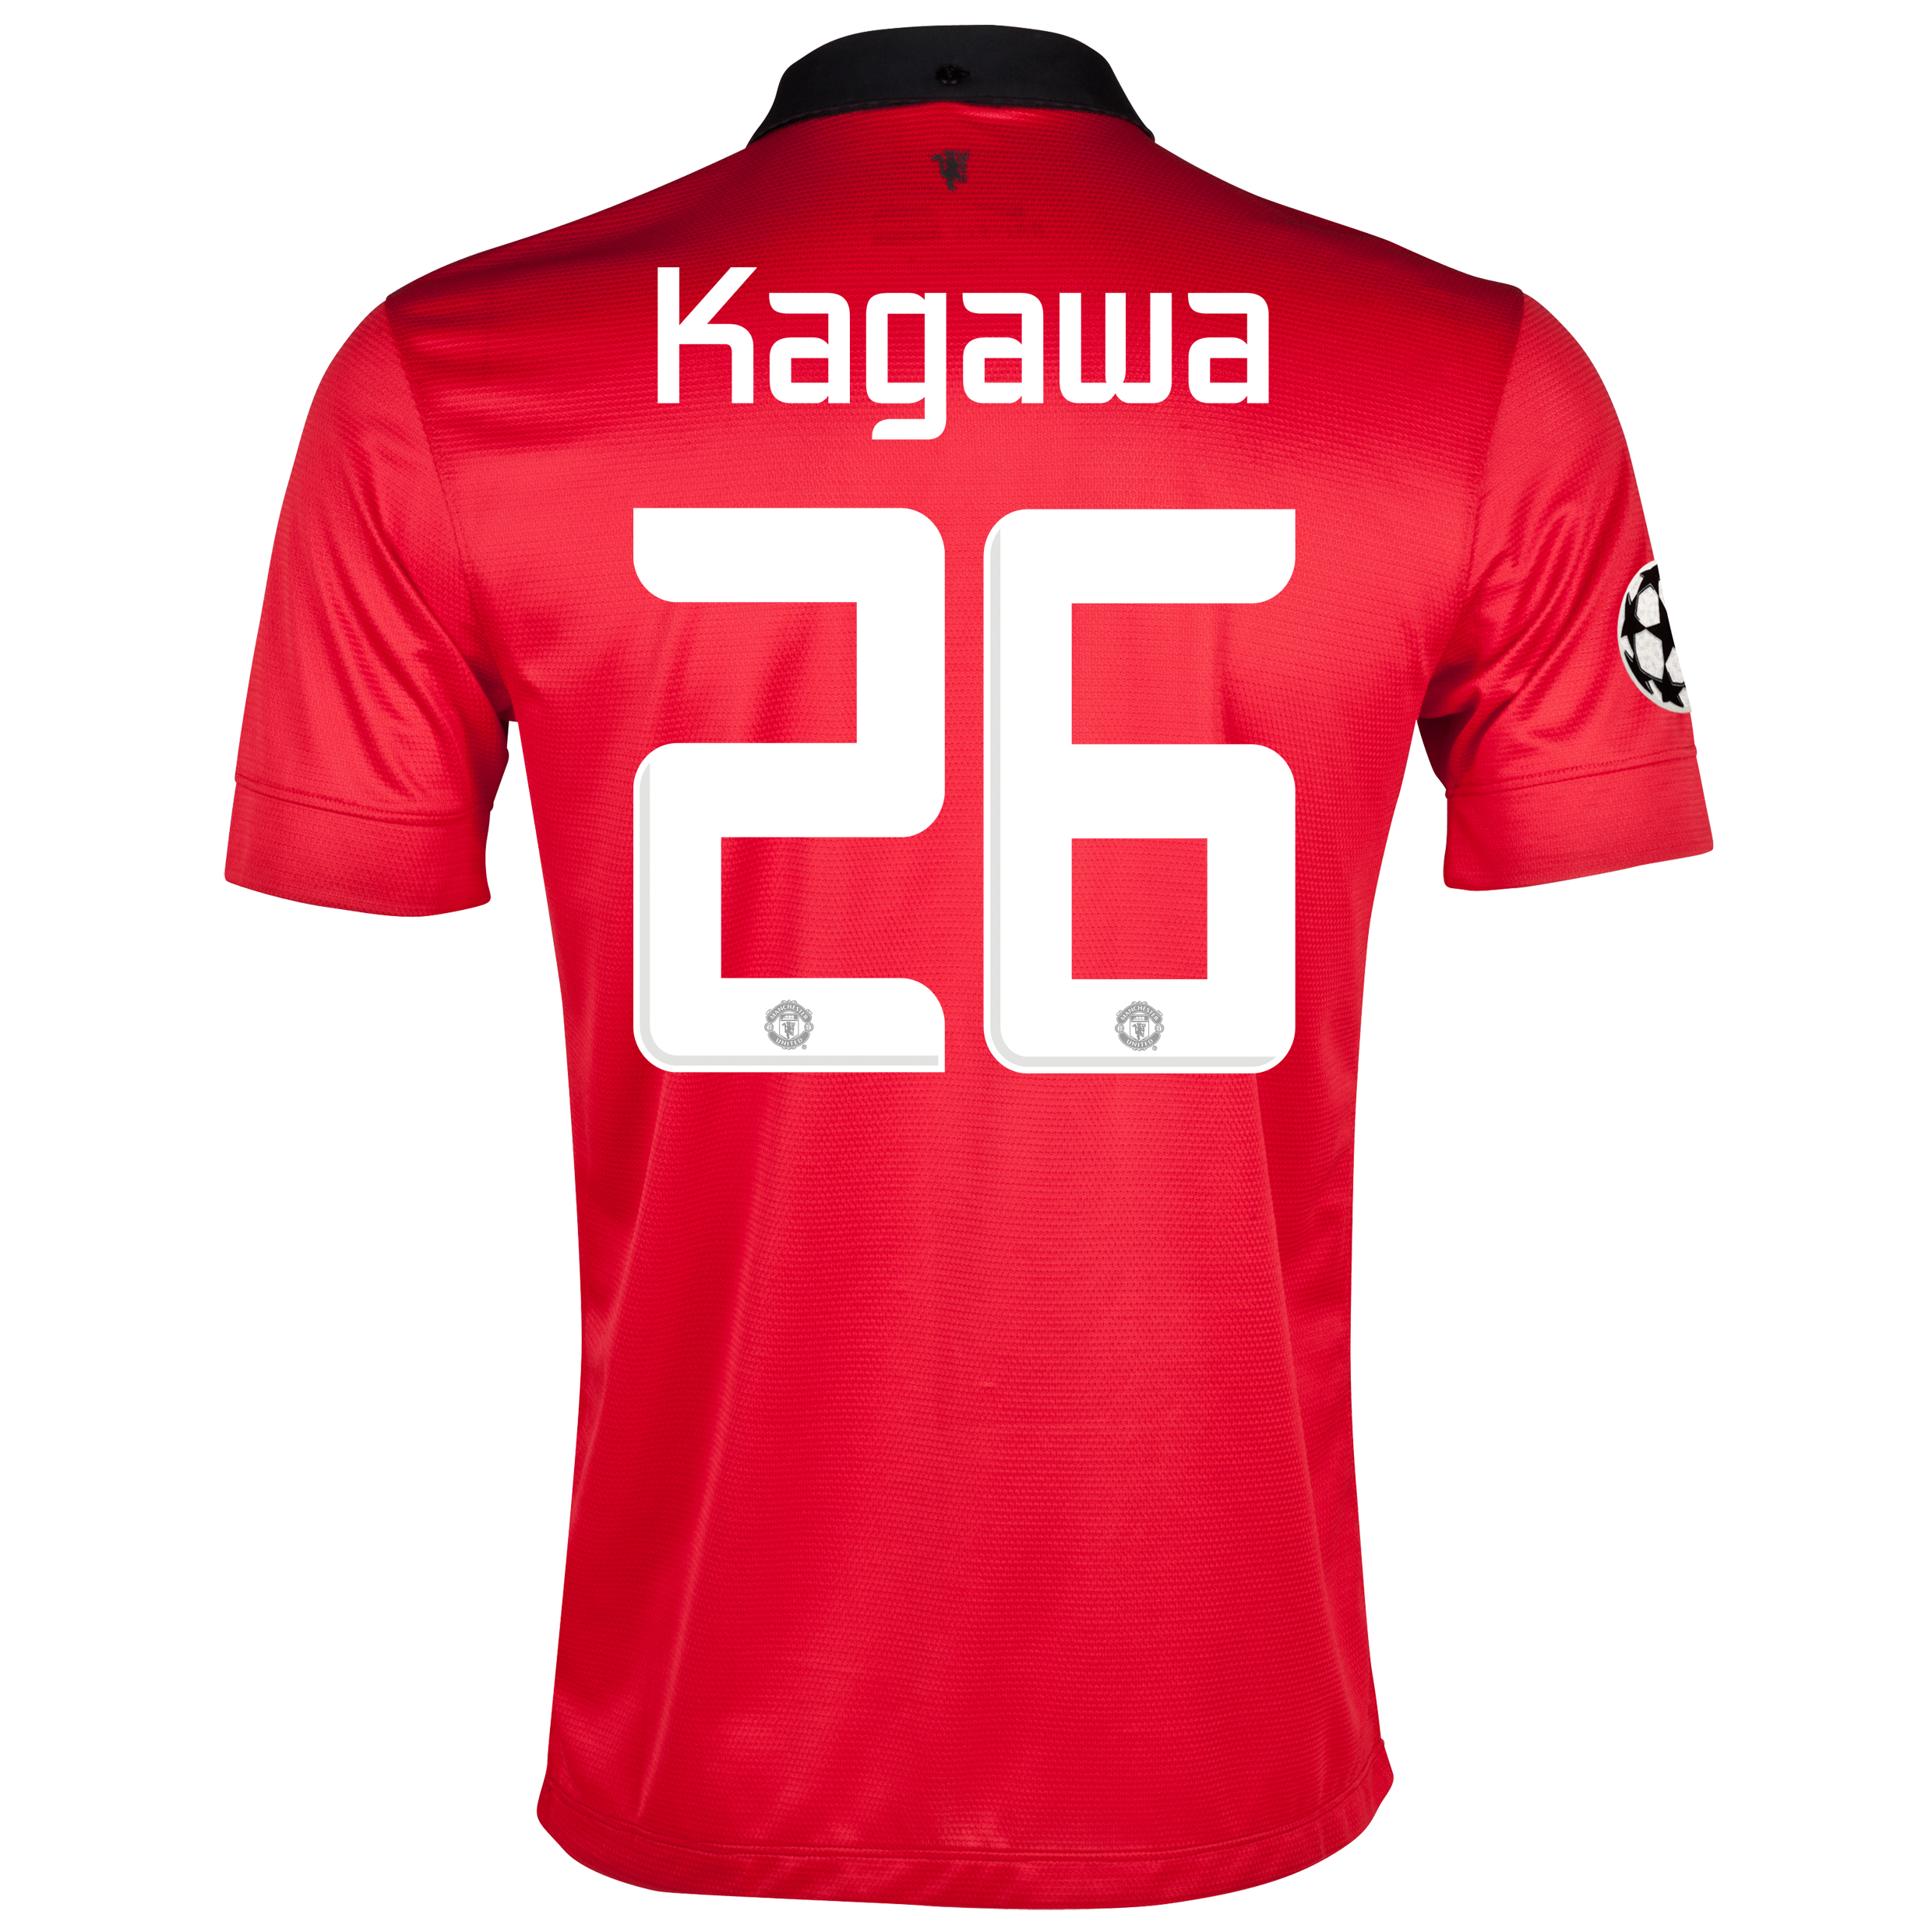 Manchester United UEFA Champions League Home Shirt 2013/14 - Kids with Kagawa 26 printing